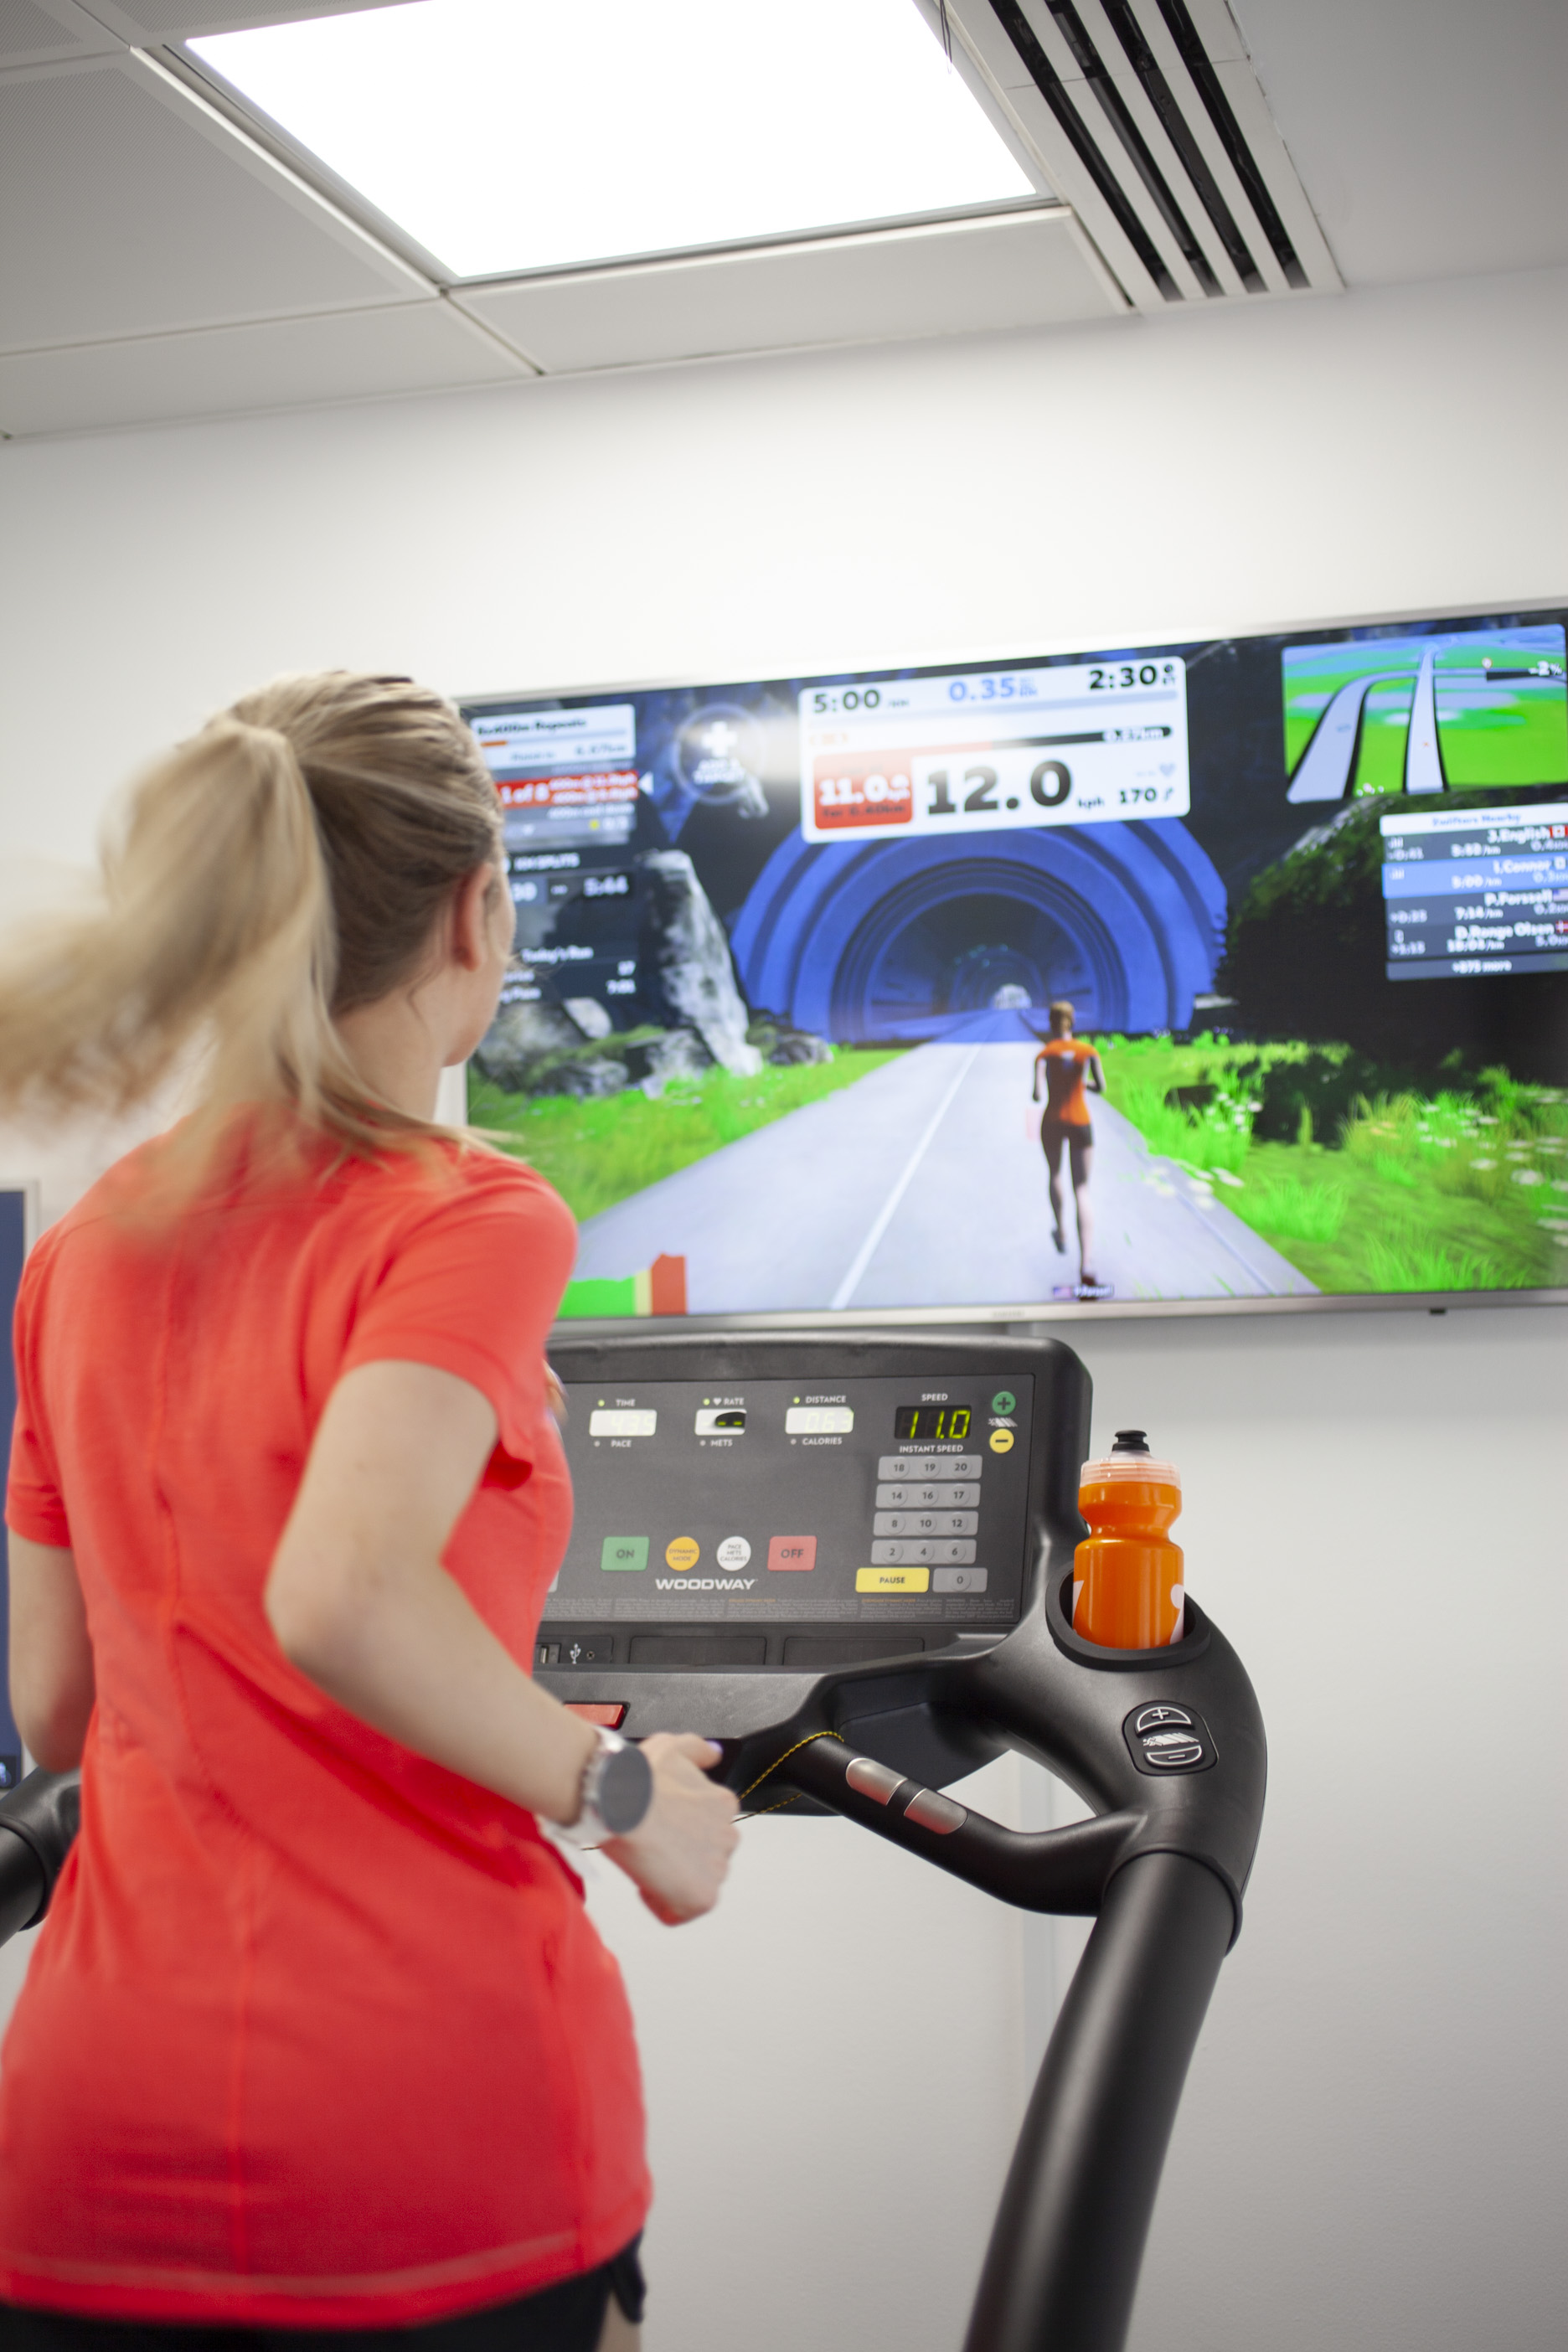 Using the Zwift app